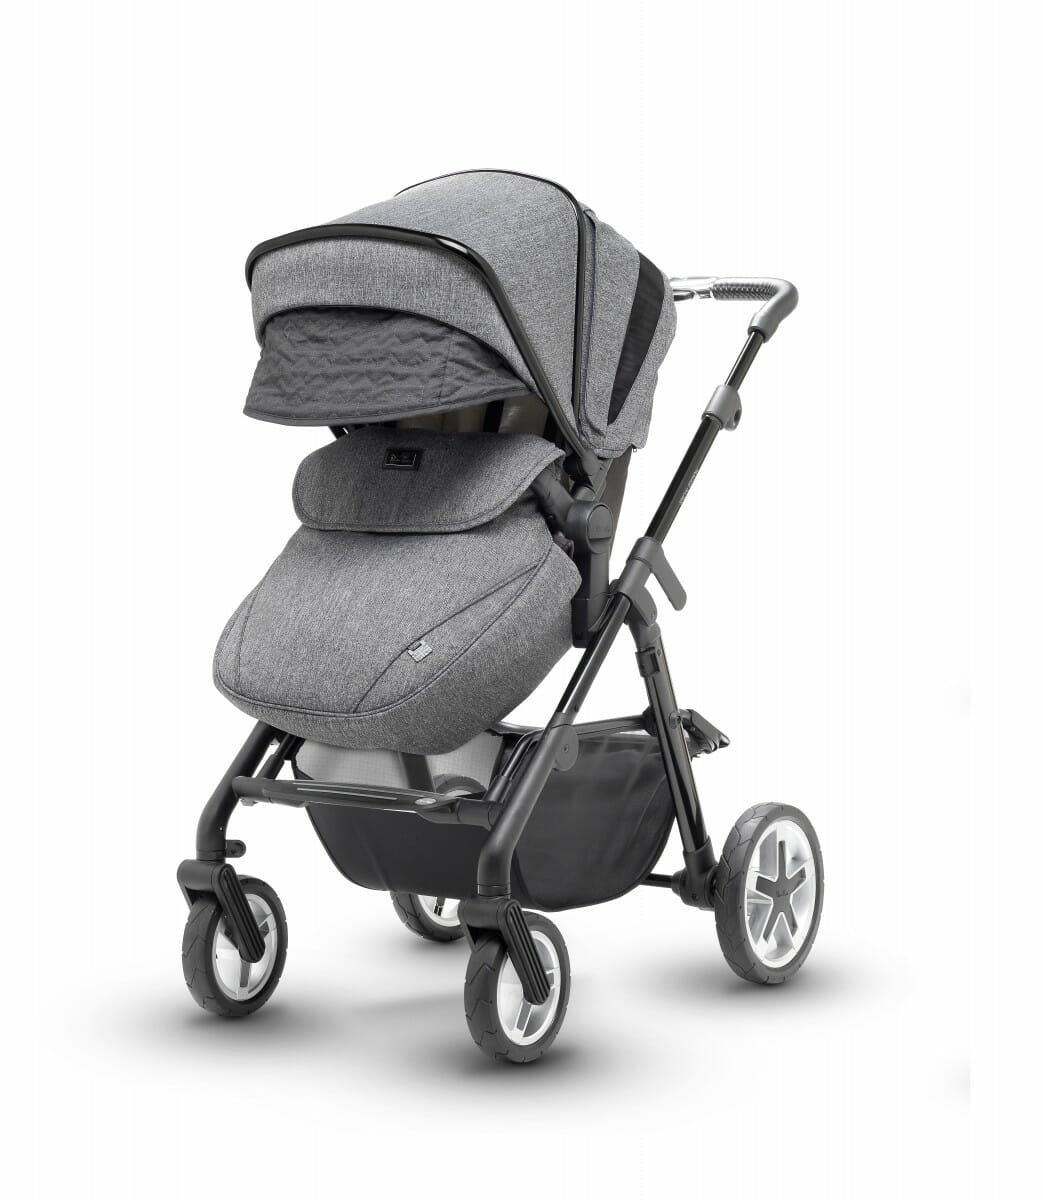 Silver Cross Pioneer Monomarque Pushchair Angle View Hood Extended